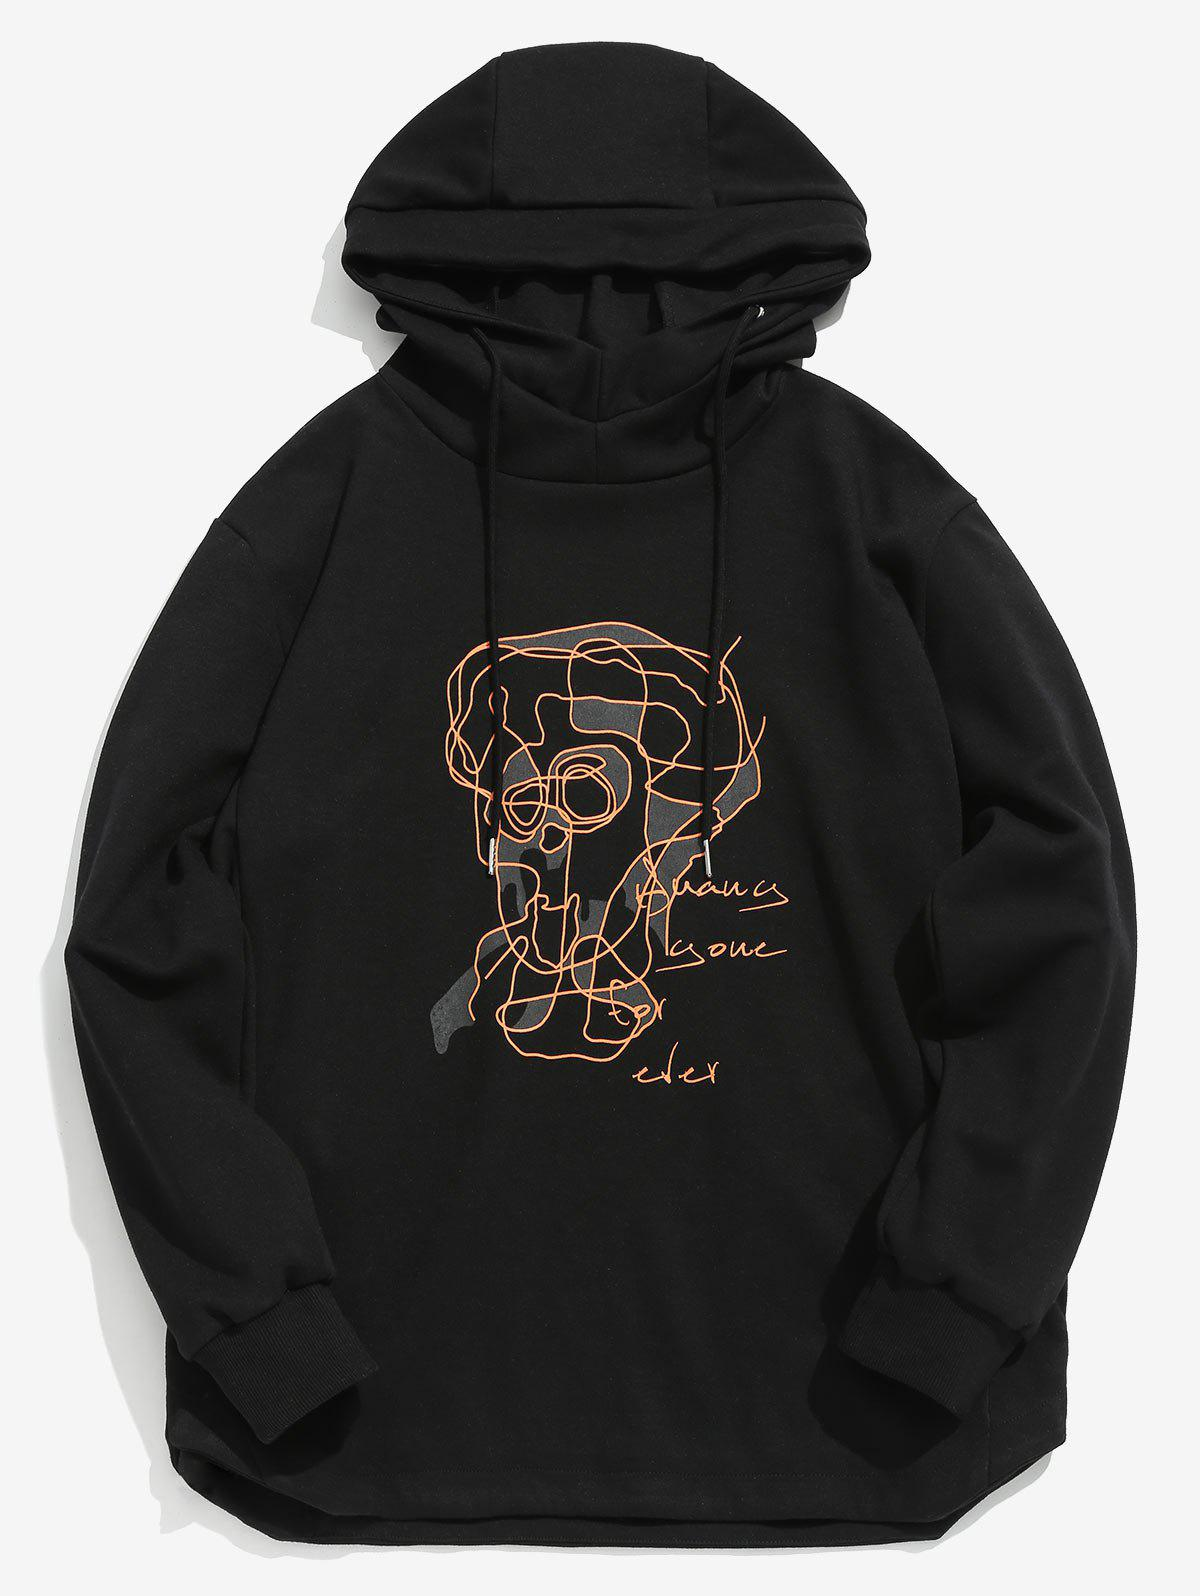 Zaful   BLACK ZAFUL Contour Face Drawing Pullover Hoodie   Clouty